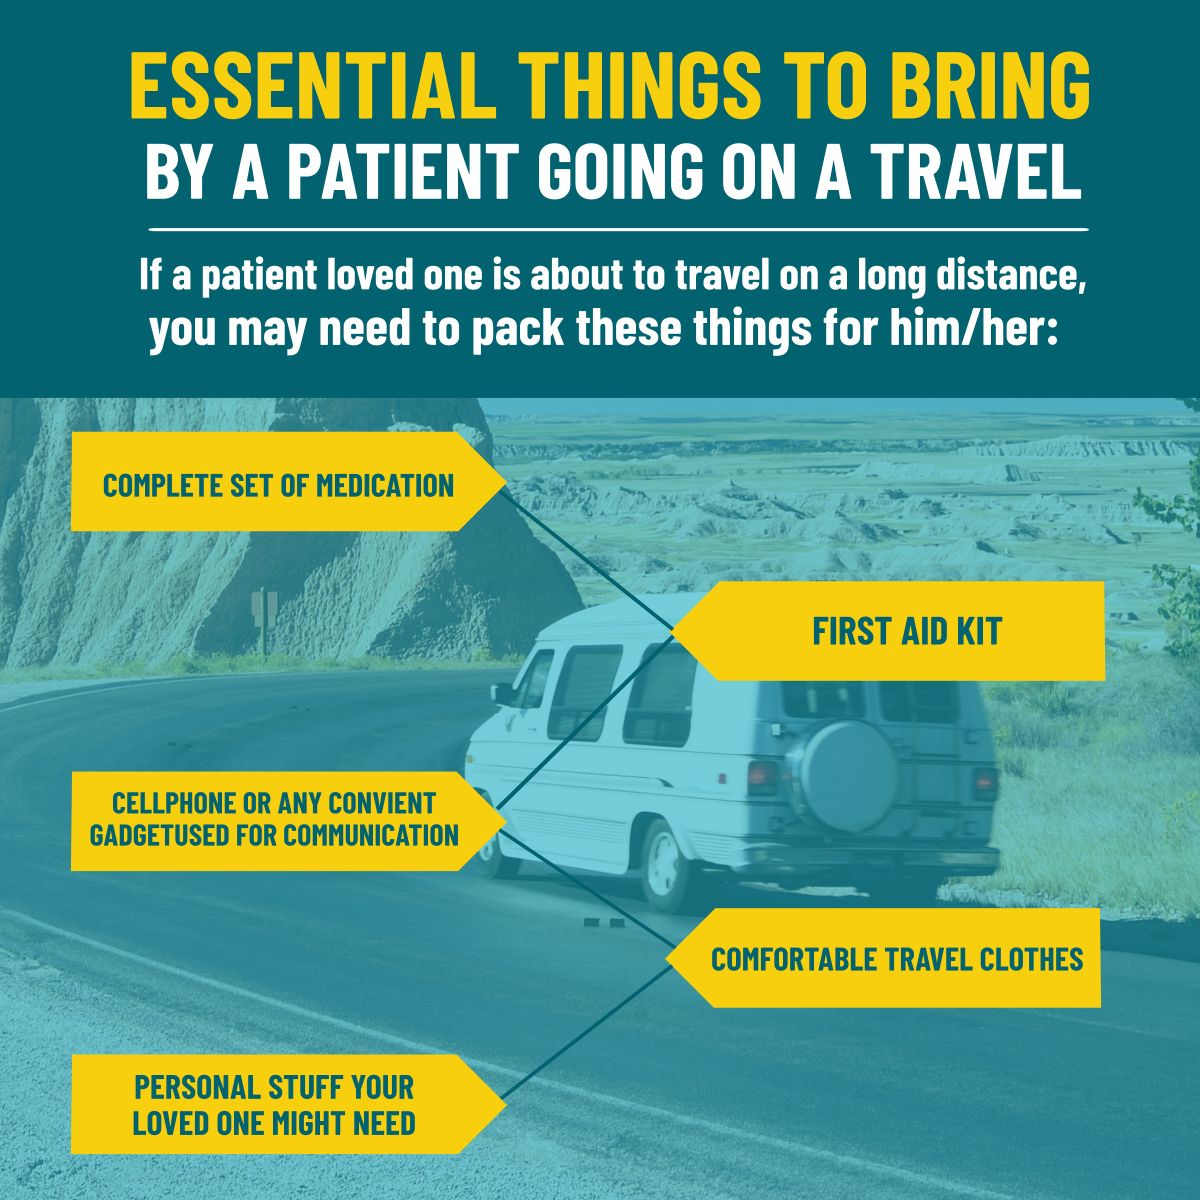 Essential Things to Bring by a Patient Going on a Travel